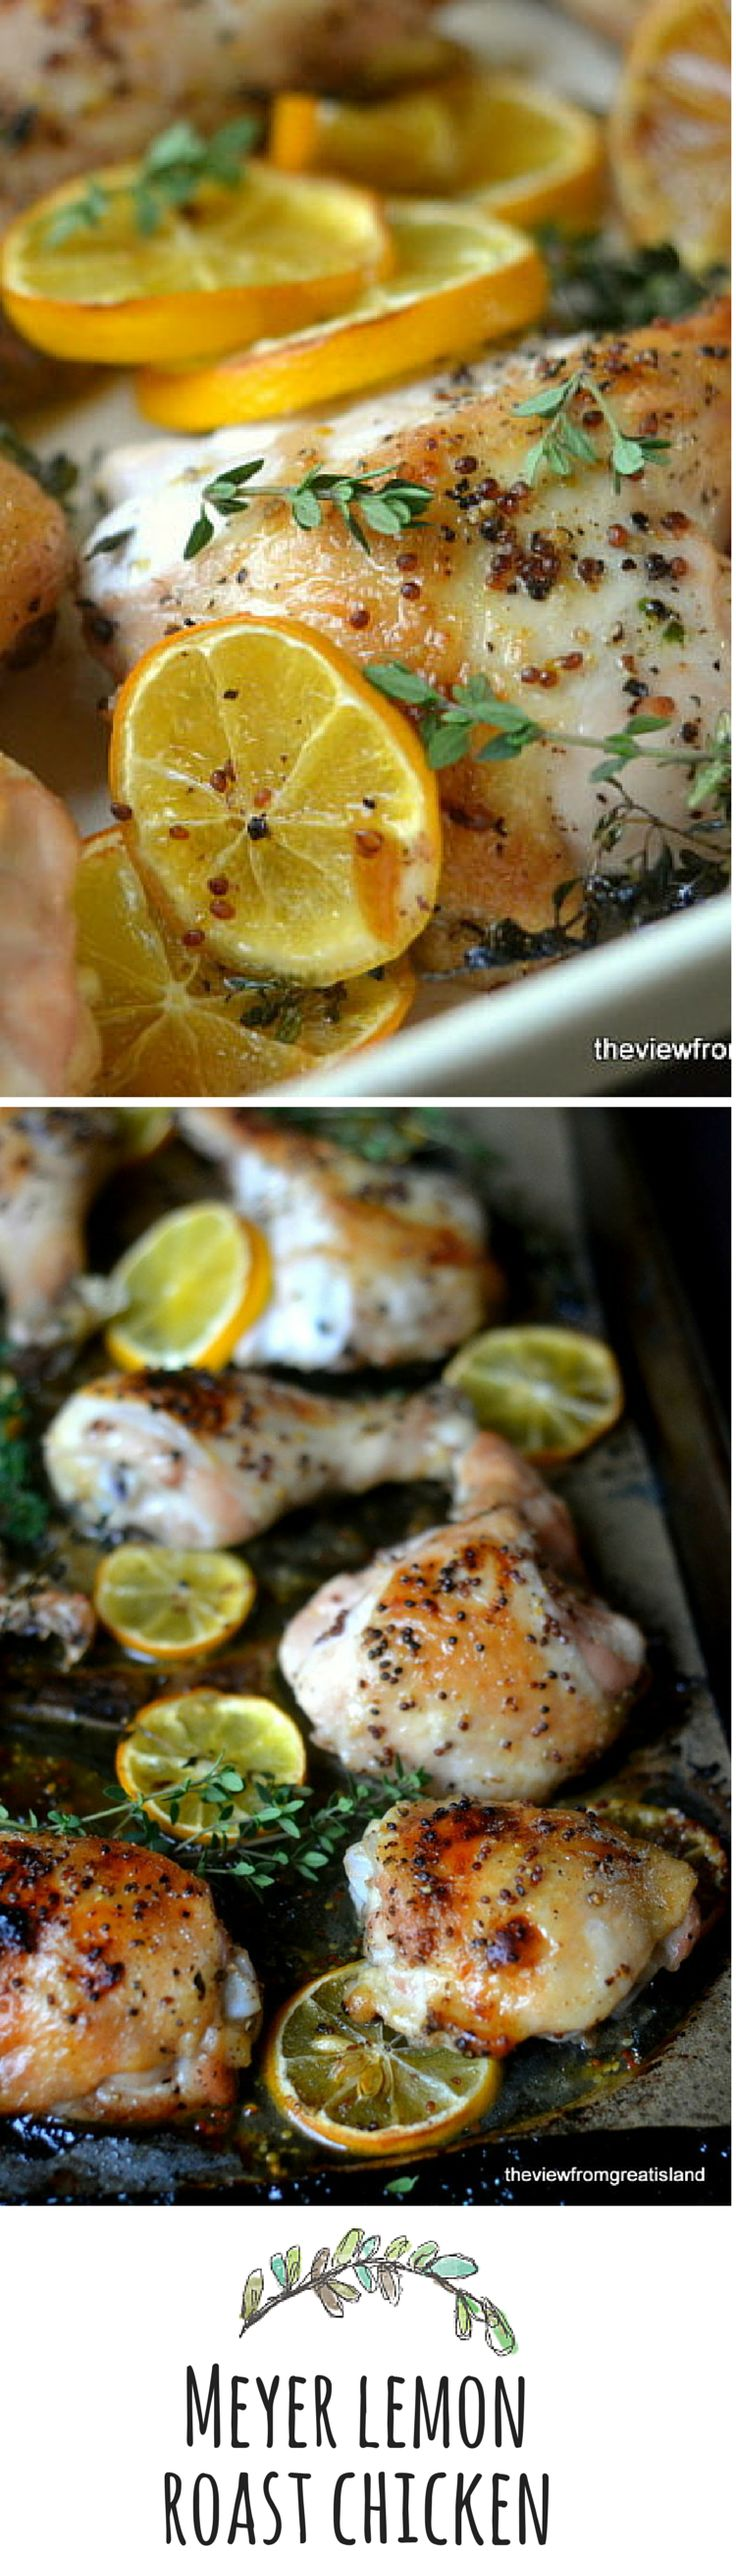 This chicken dish brings a bit of sunshine to the table...